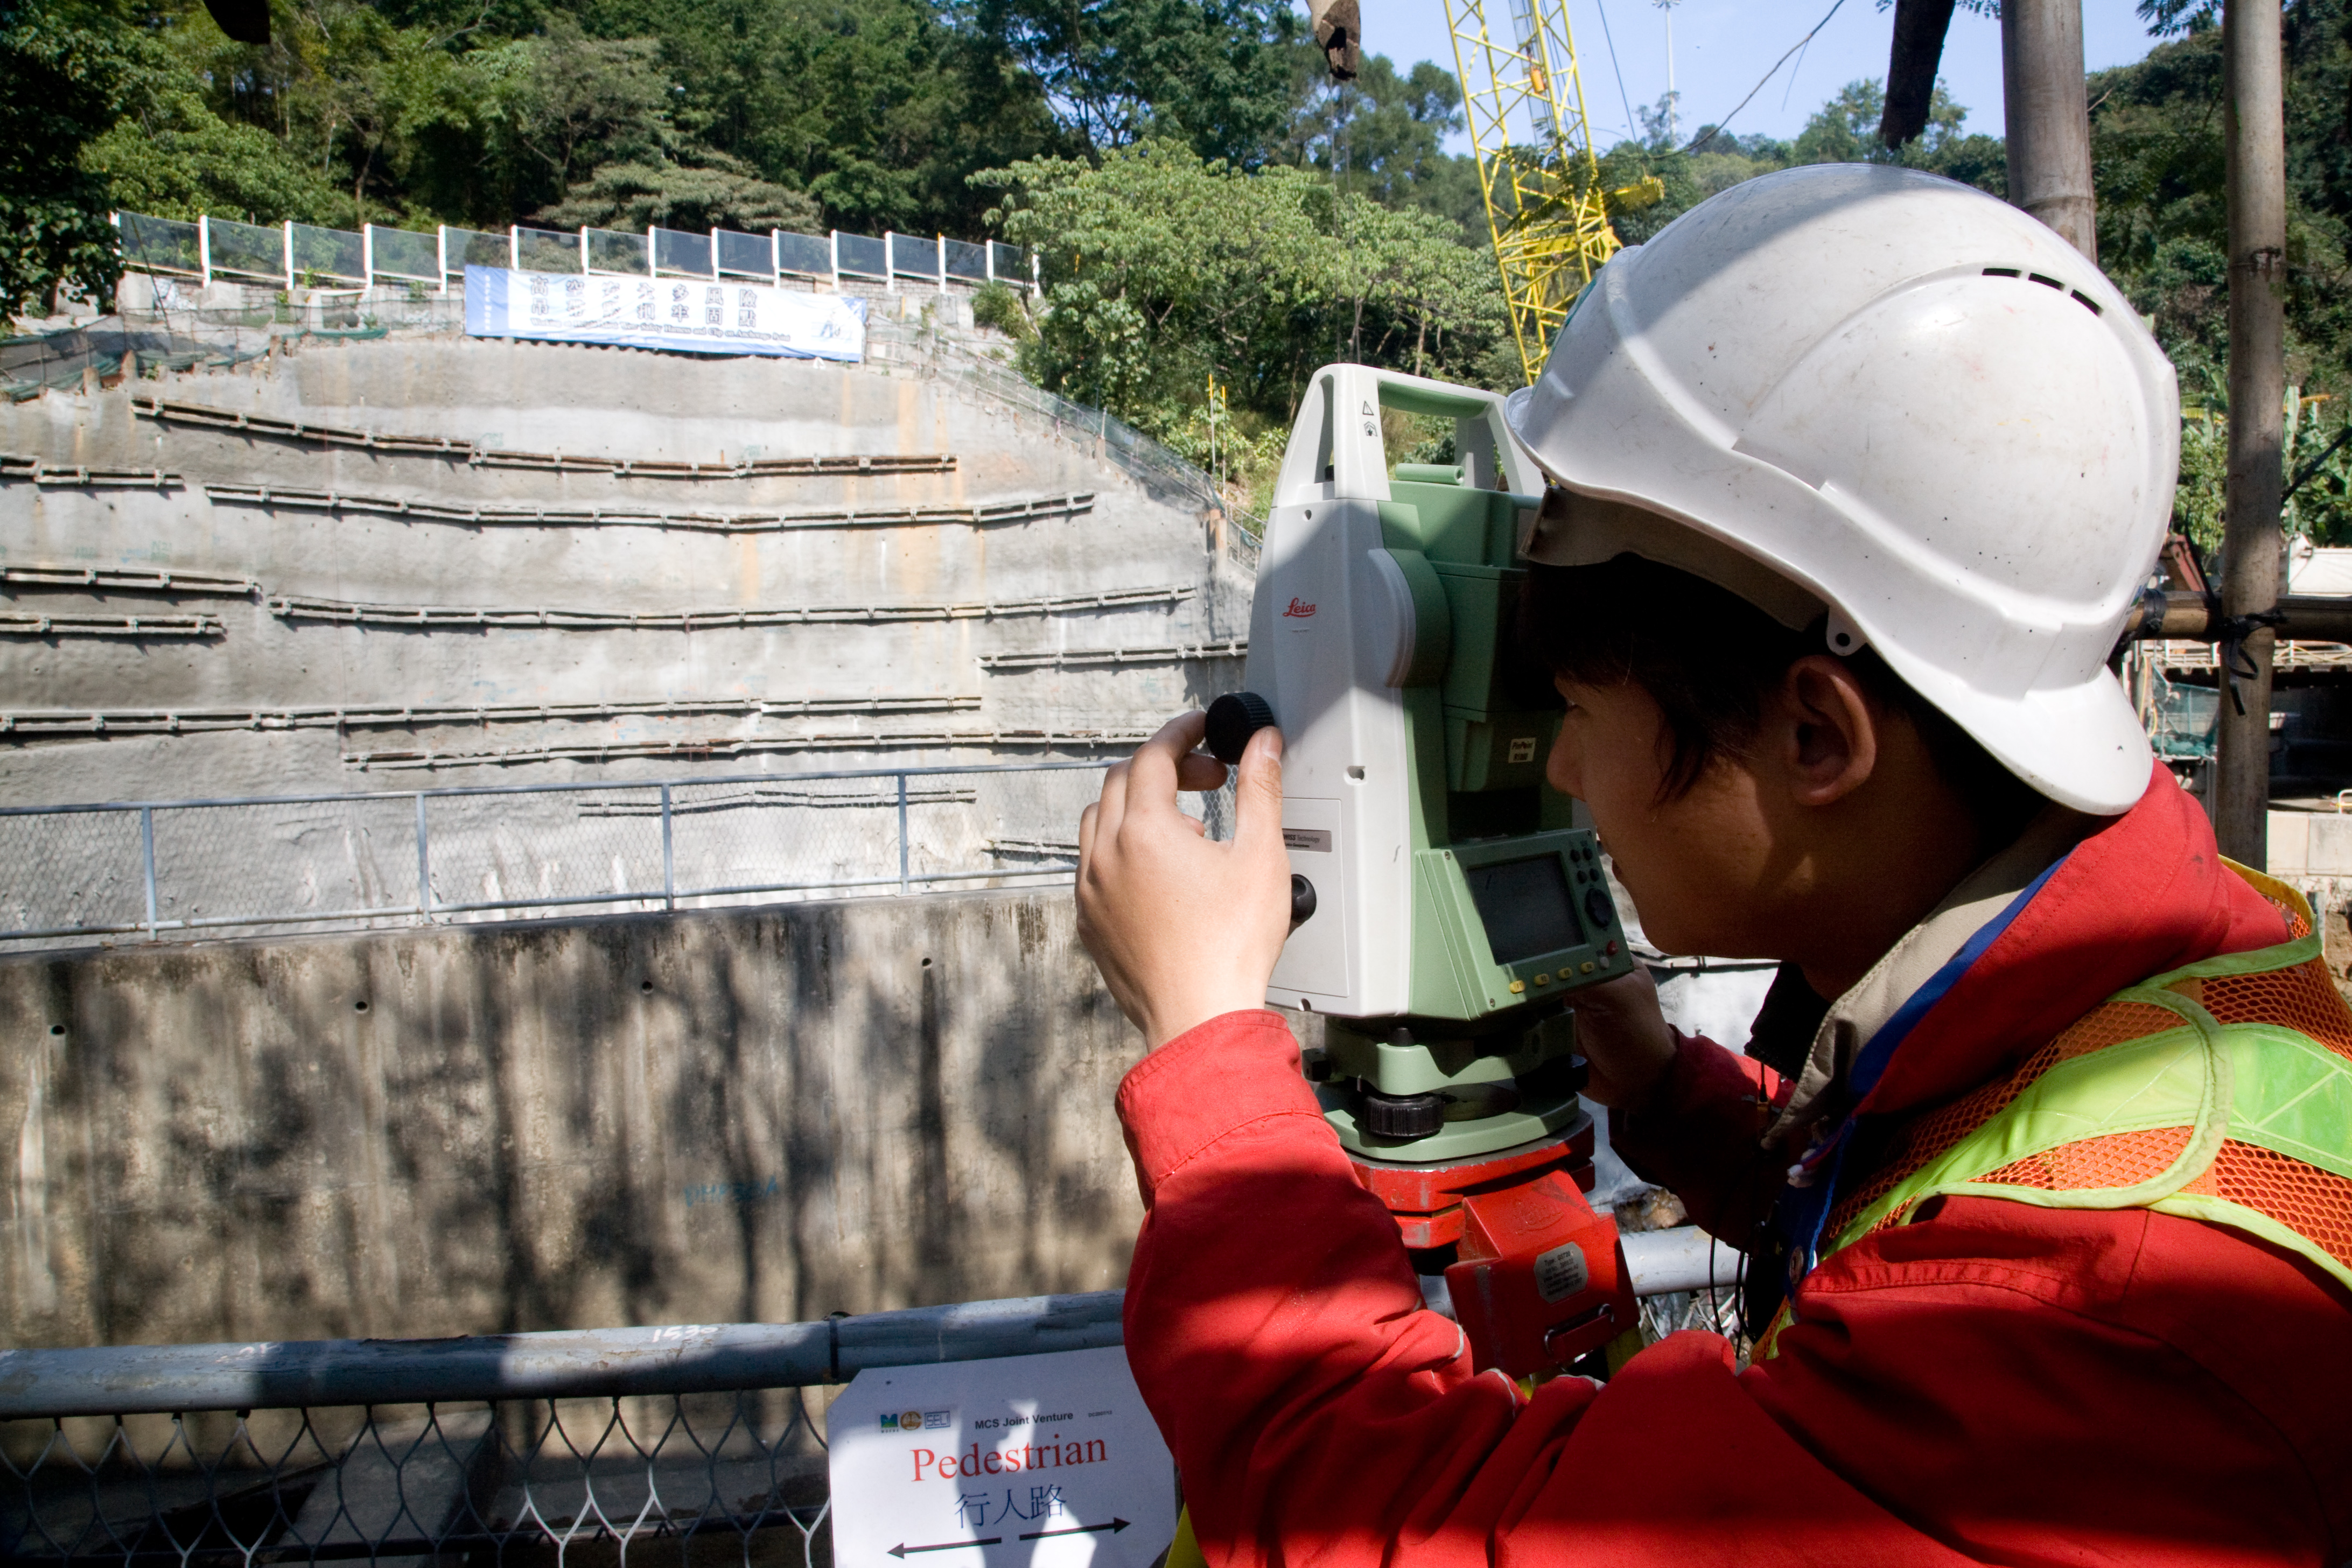 View of site worker taking survey measurements at an intake site